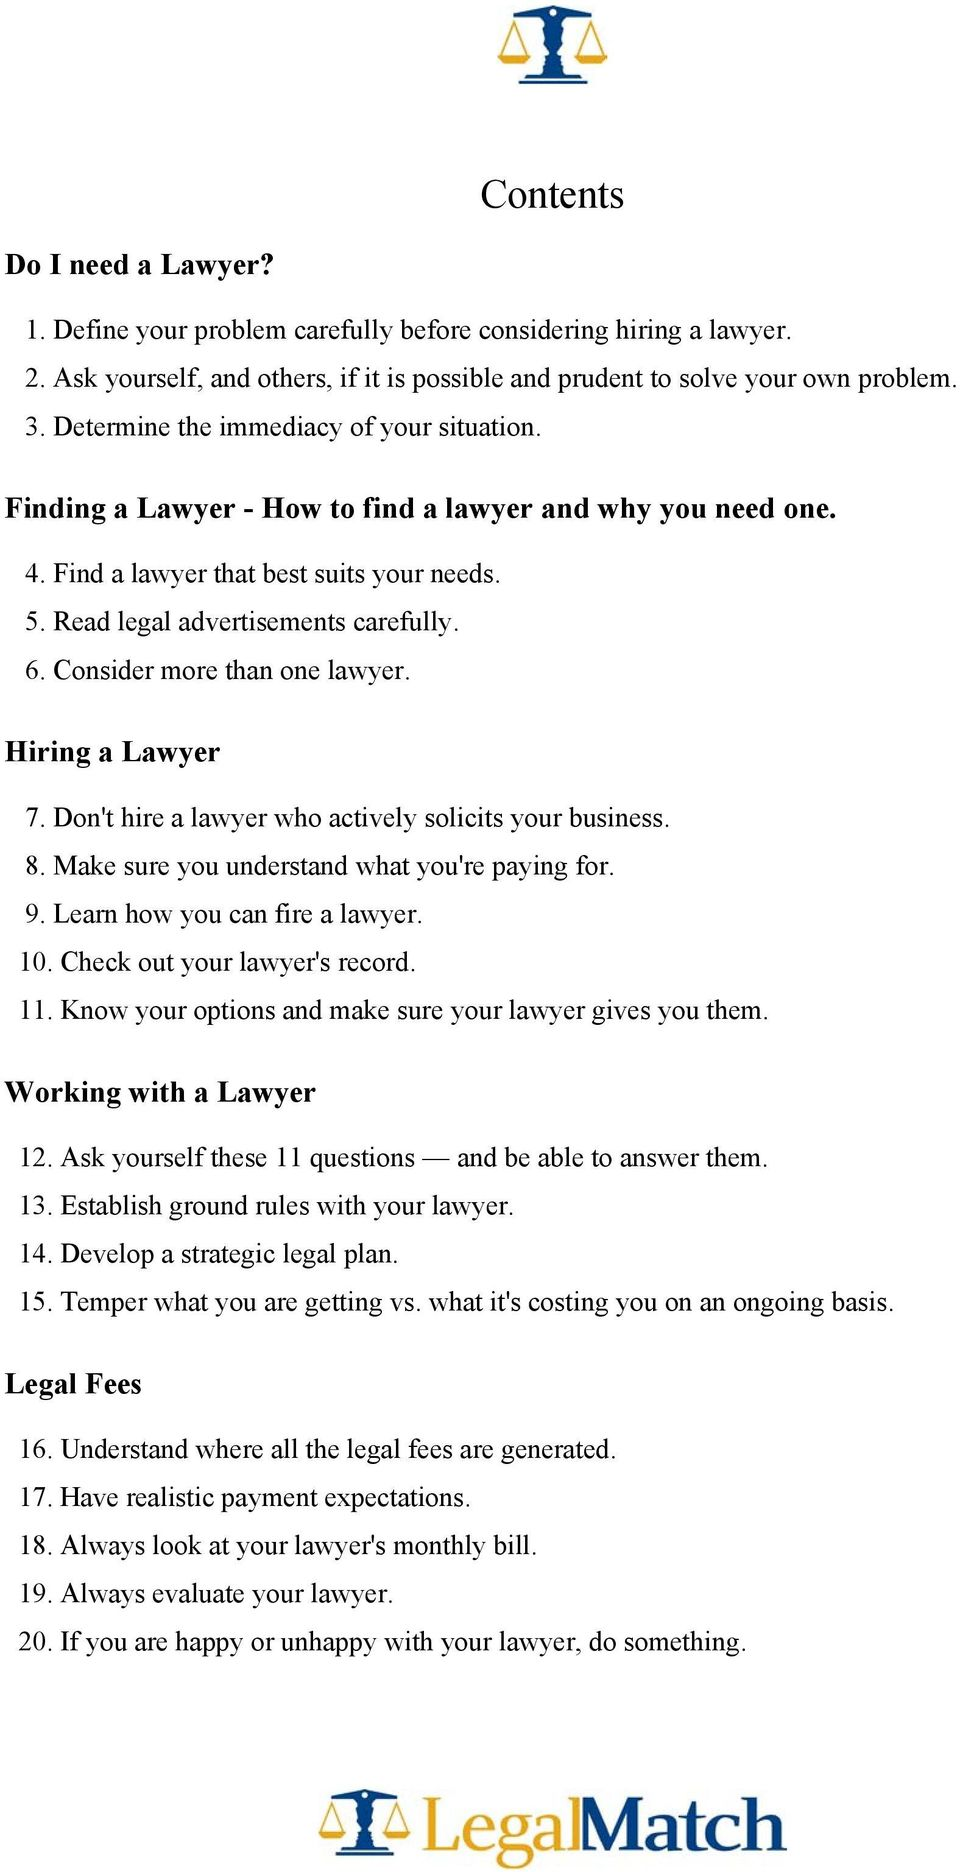 Consider more than one lawyer. Hiring a Lawyer 7. Don't hire a lawyer who actively solicits your business. 8. Make sure you understand what you're paying for. 9. Learn how you can fire a lawyer. 10.